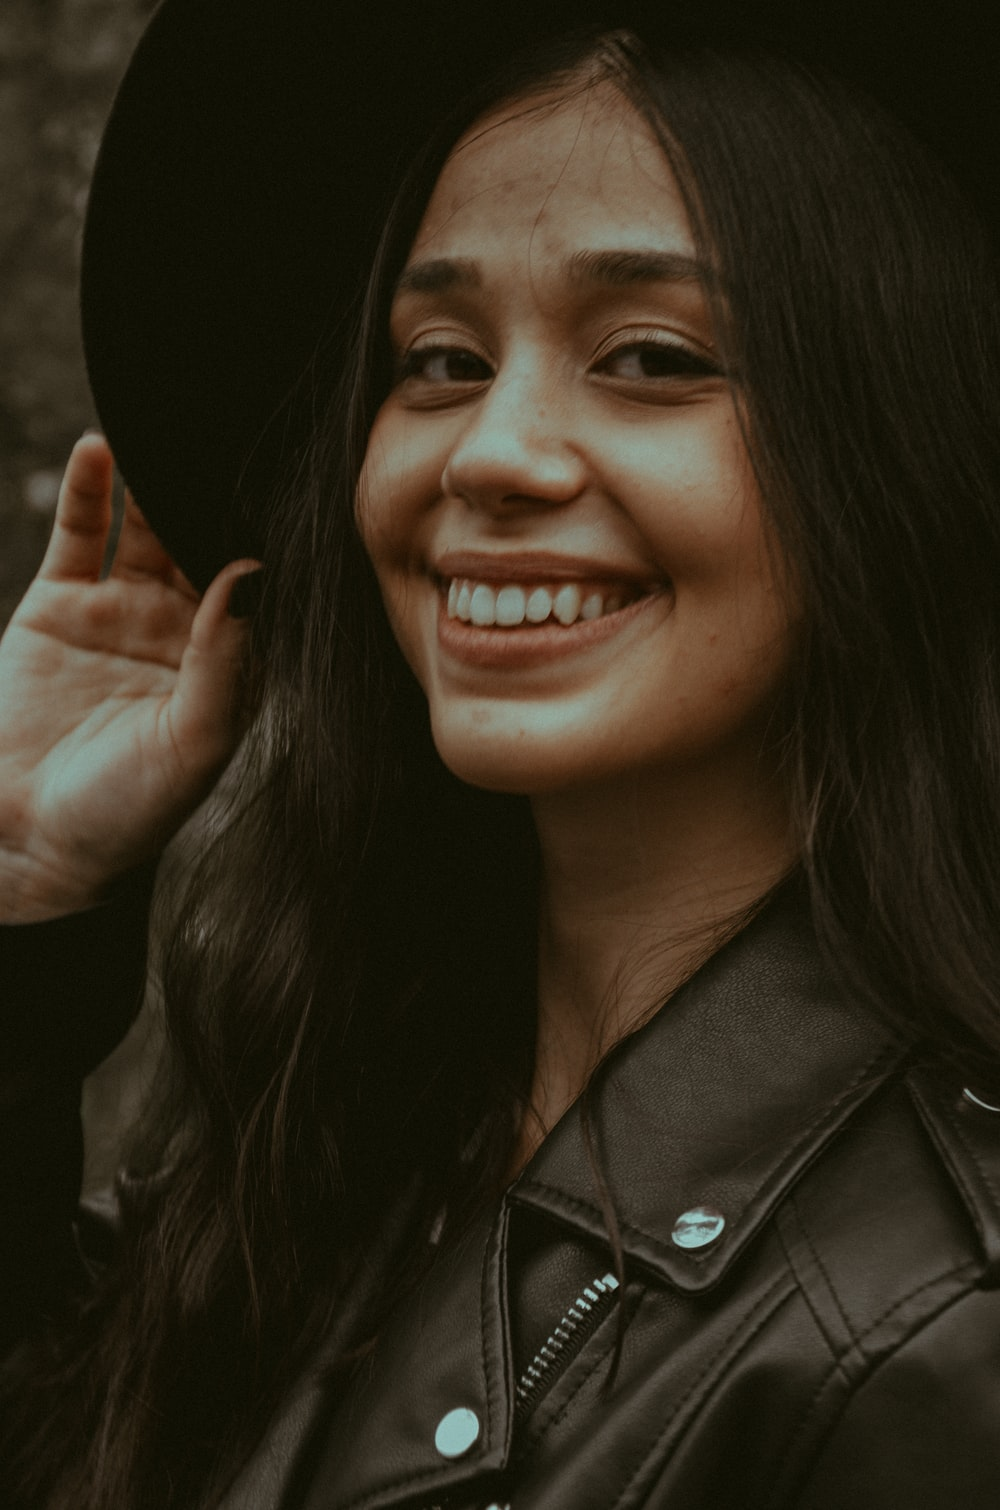 smiling woman in black leather jacket